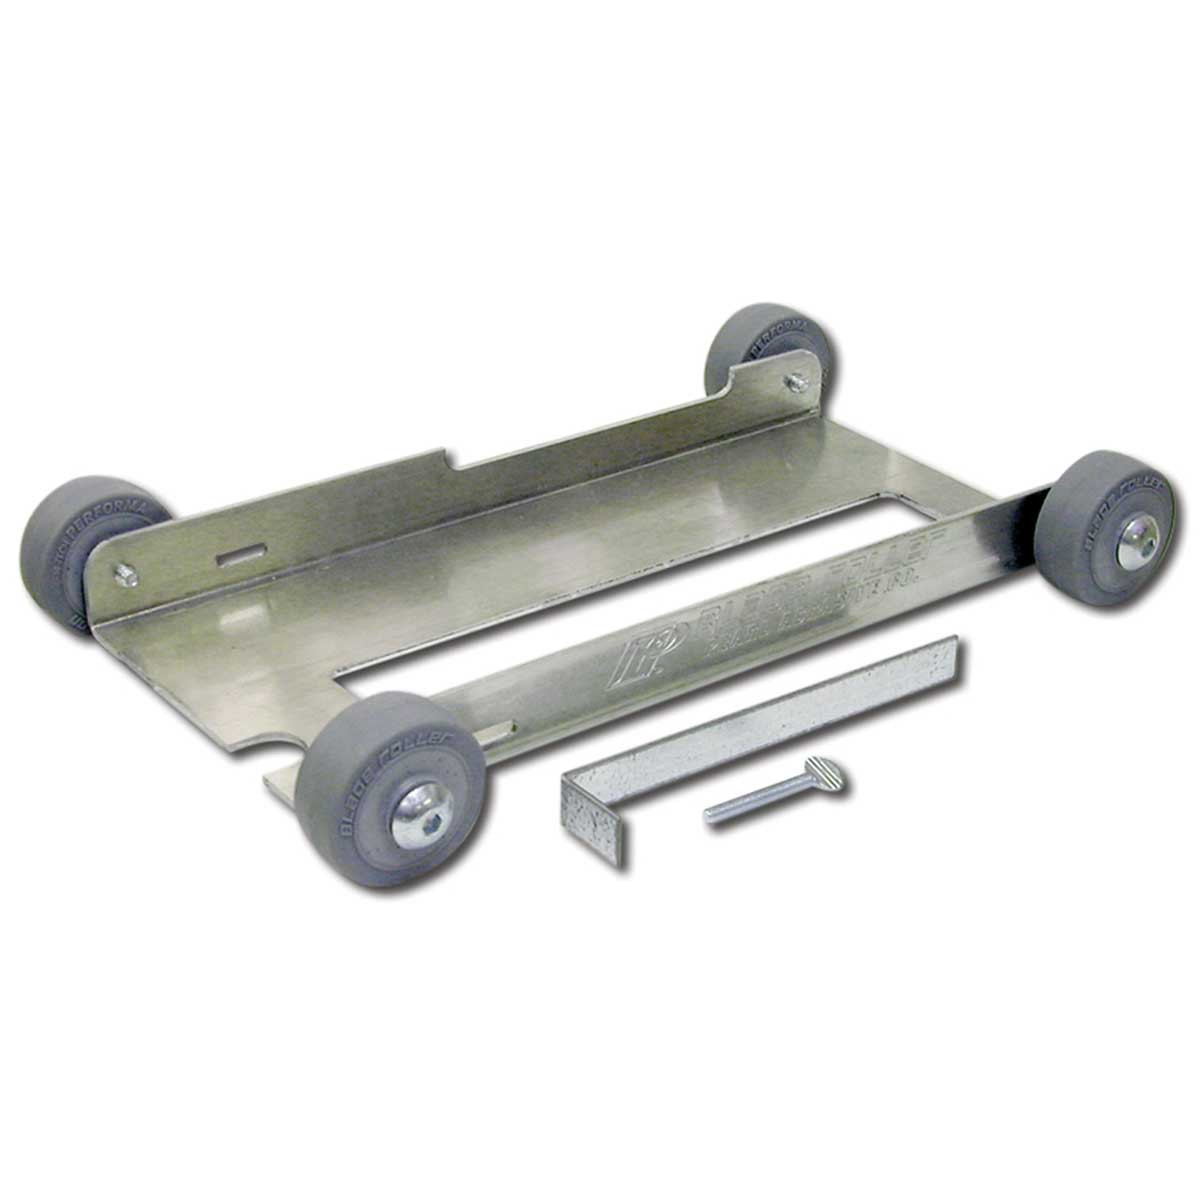 Pearl Blade Roller for Circular Saw